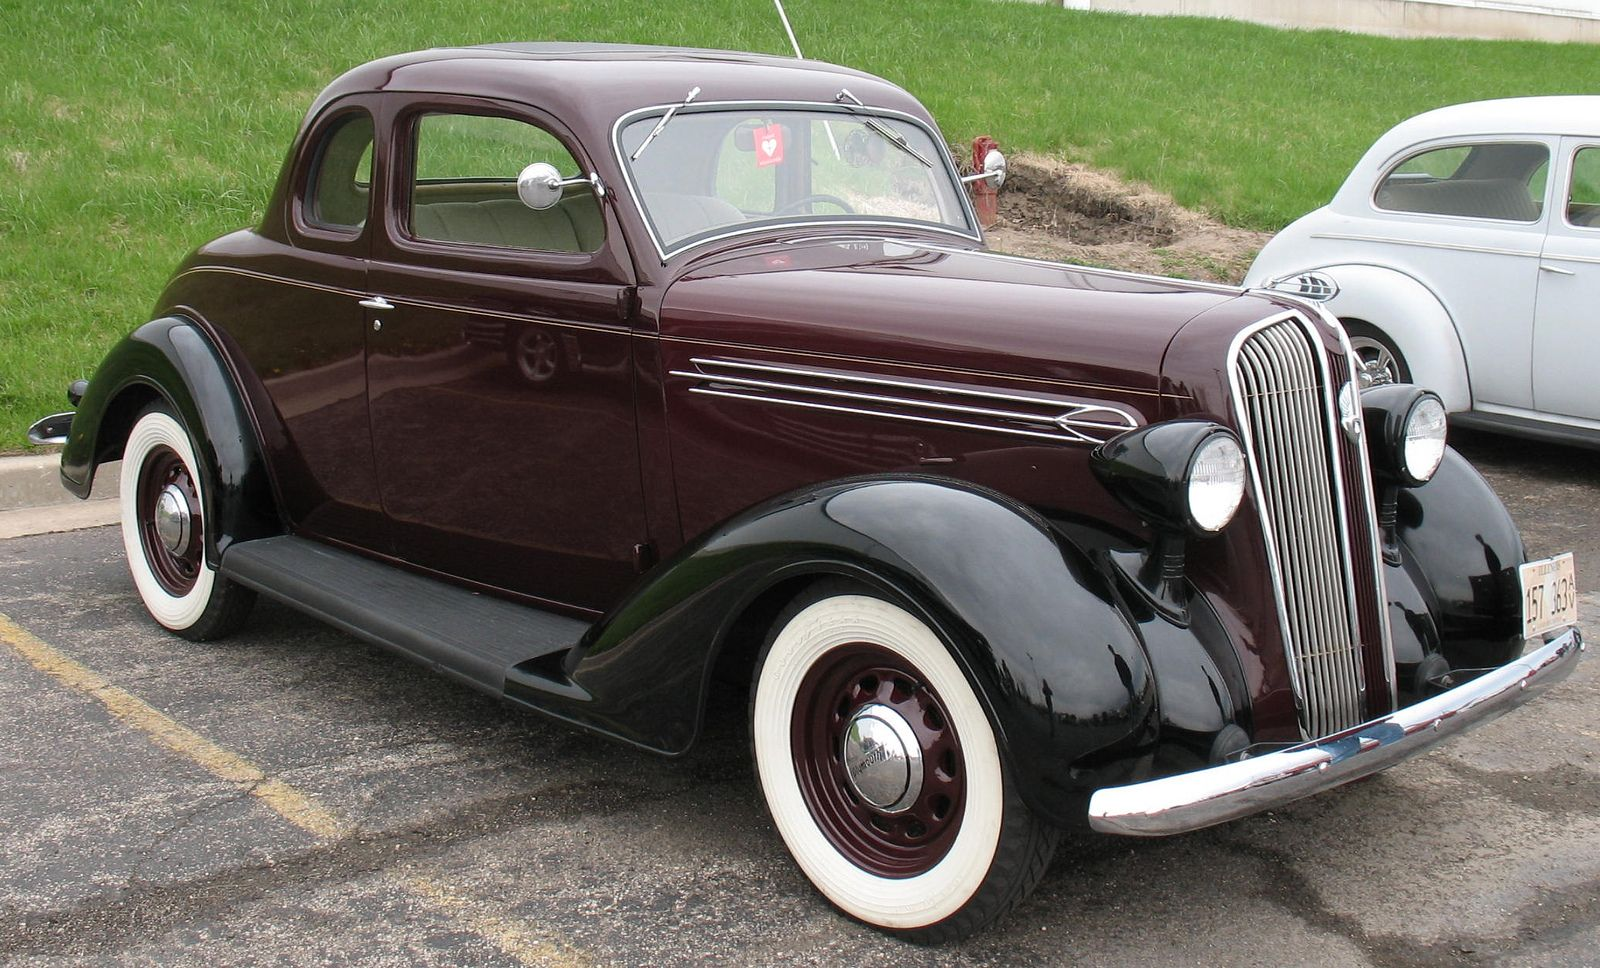 1936 Plymouth P2 Deluxe Coupe With Images Classic Cars Vintage